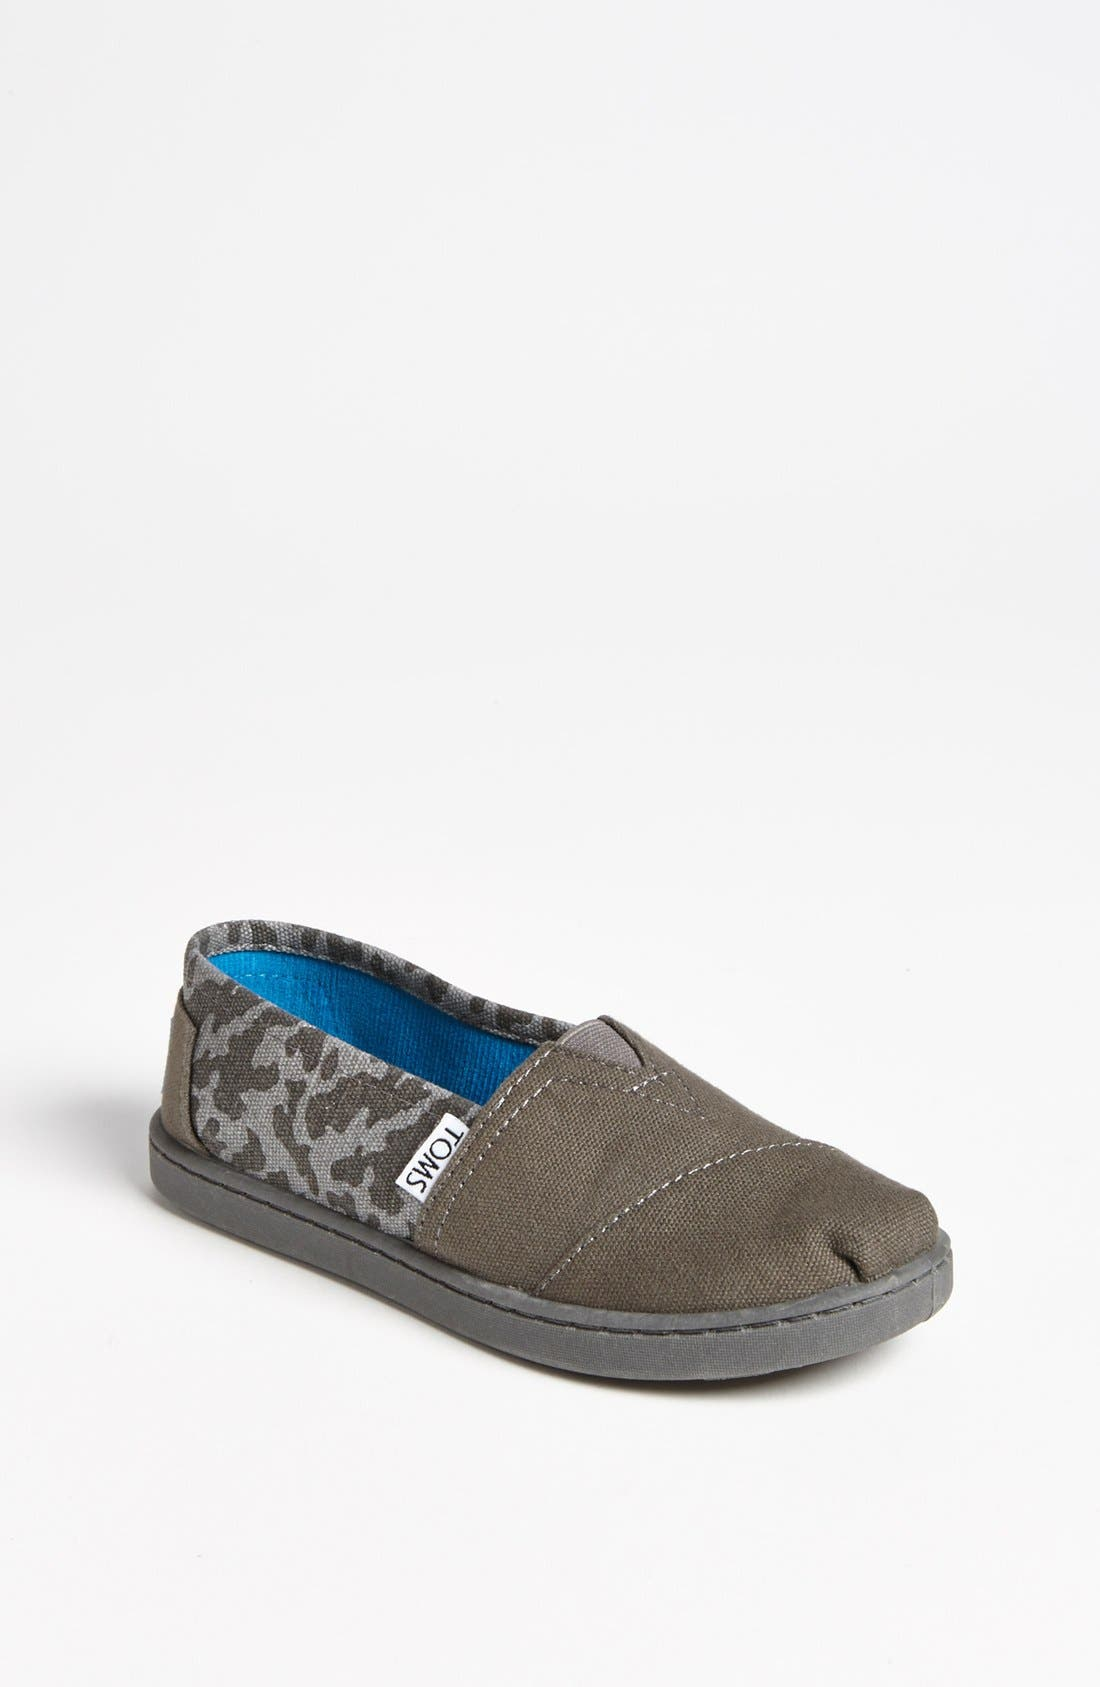 Alternate Image 1 Selected - TOMS 'Classic - Camo' Slip-On (Toddler, Little Kid & Big Kid)